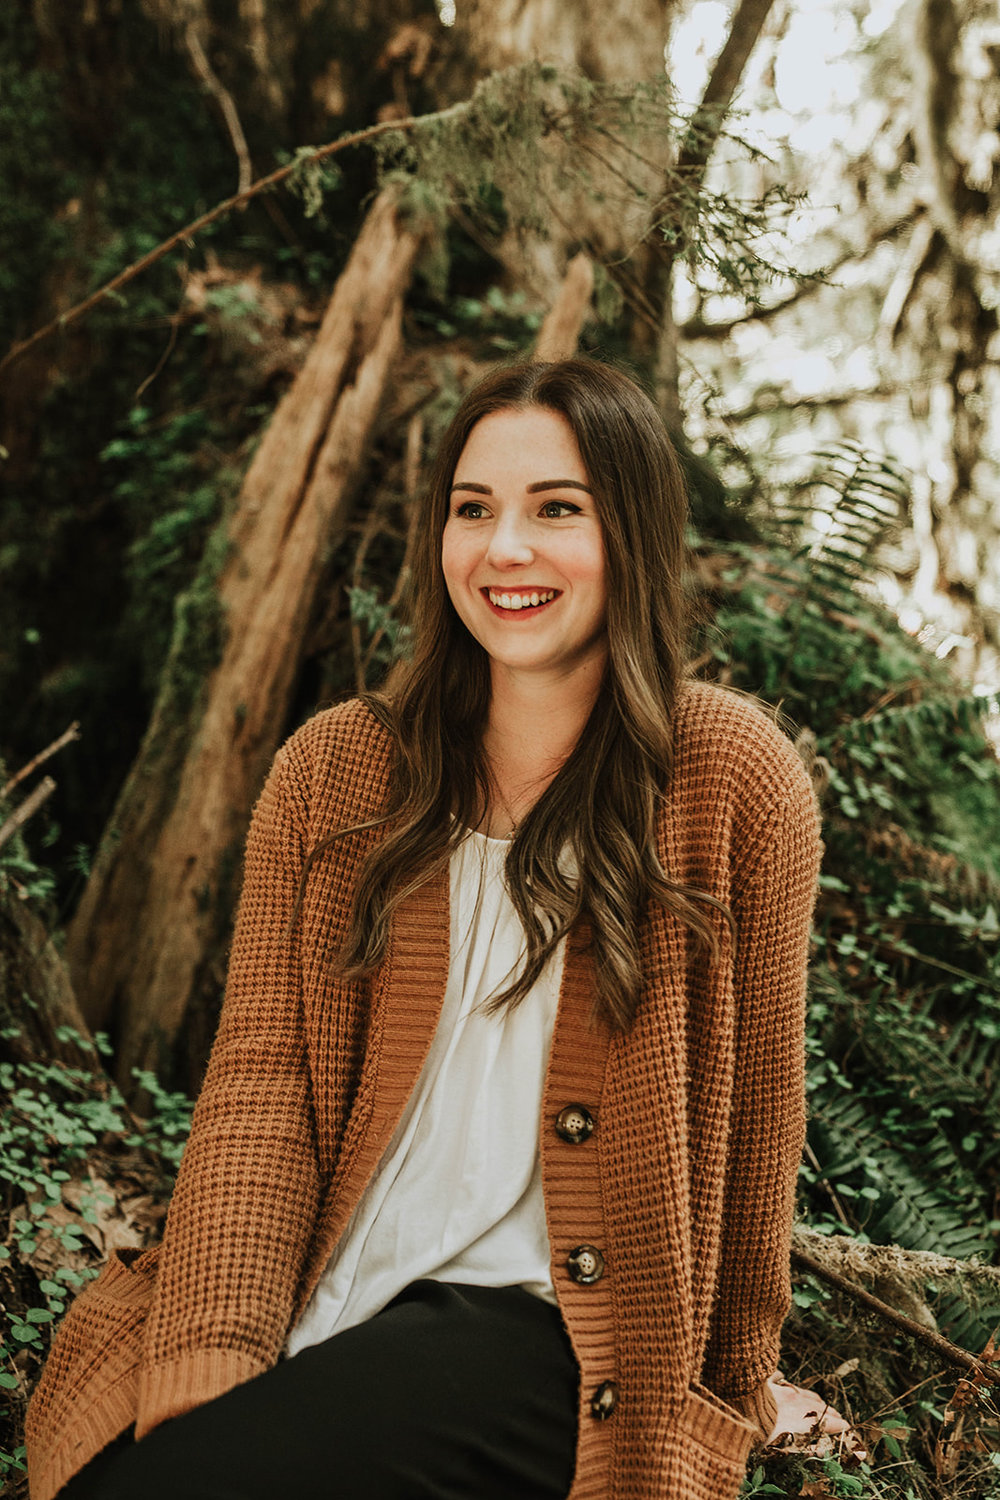 pretty girl smiling in forest